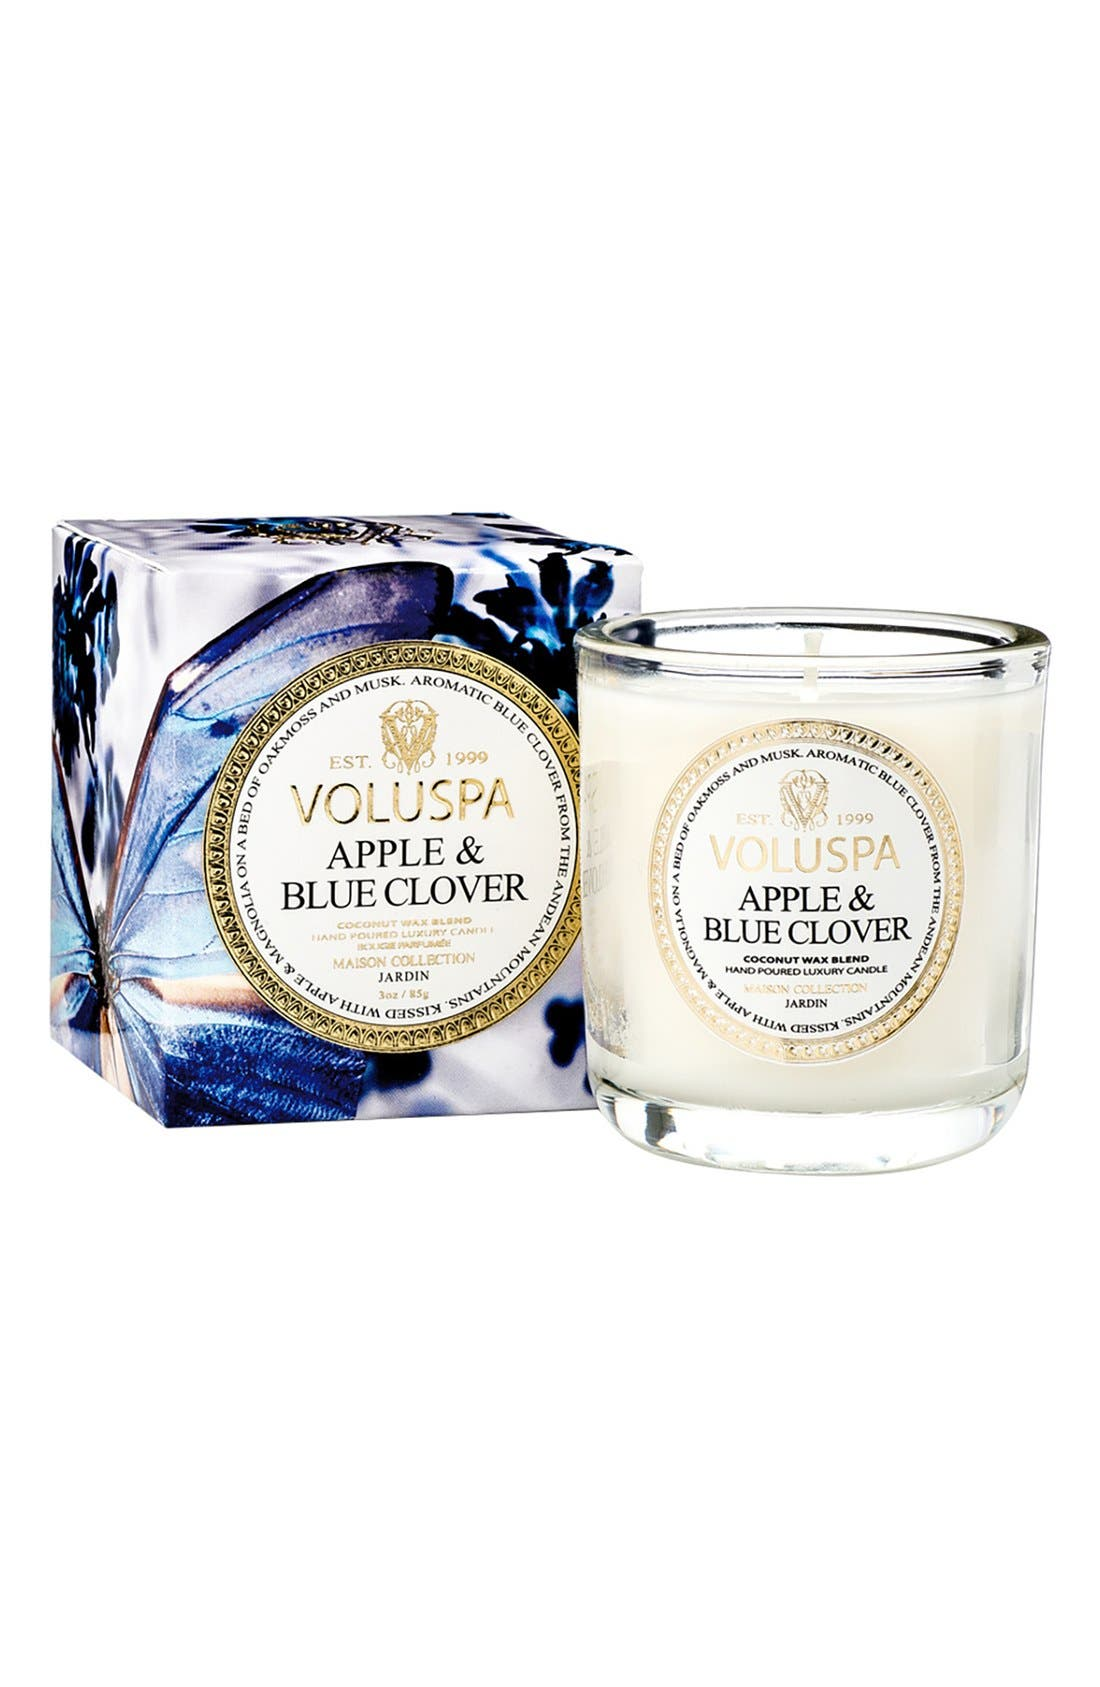 Voluspa Maison Jardin - Apple & Blue Clover Classic Boxed Candle